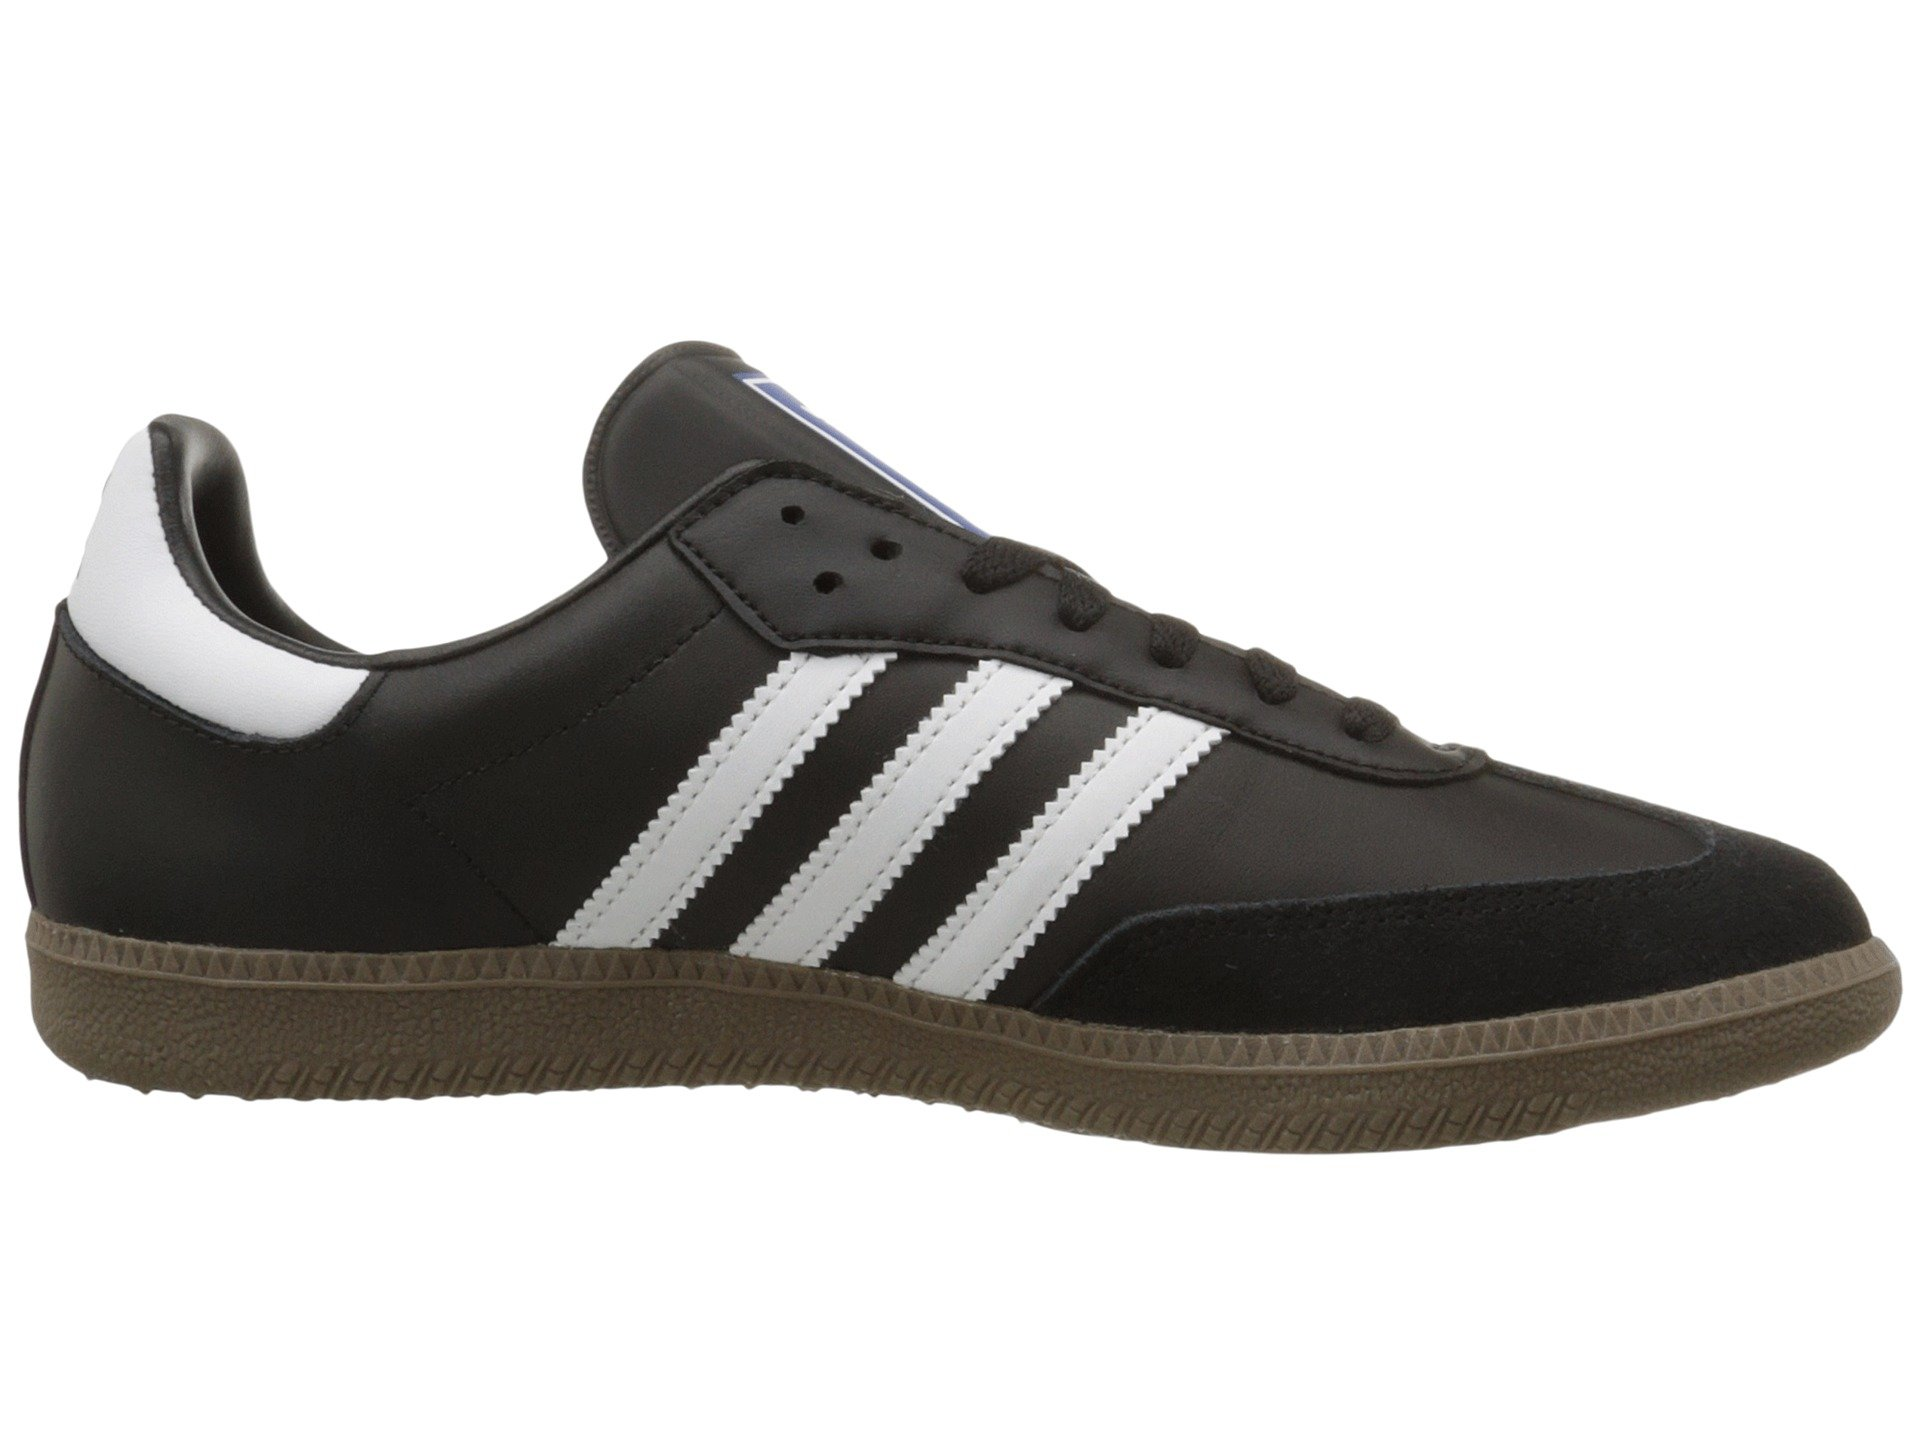 adidas originals samba leather